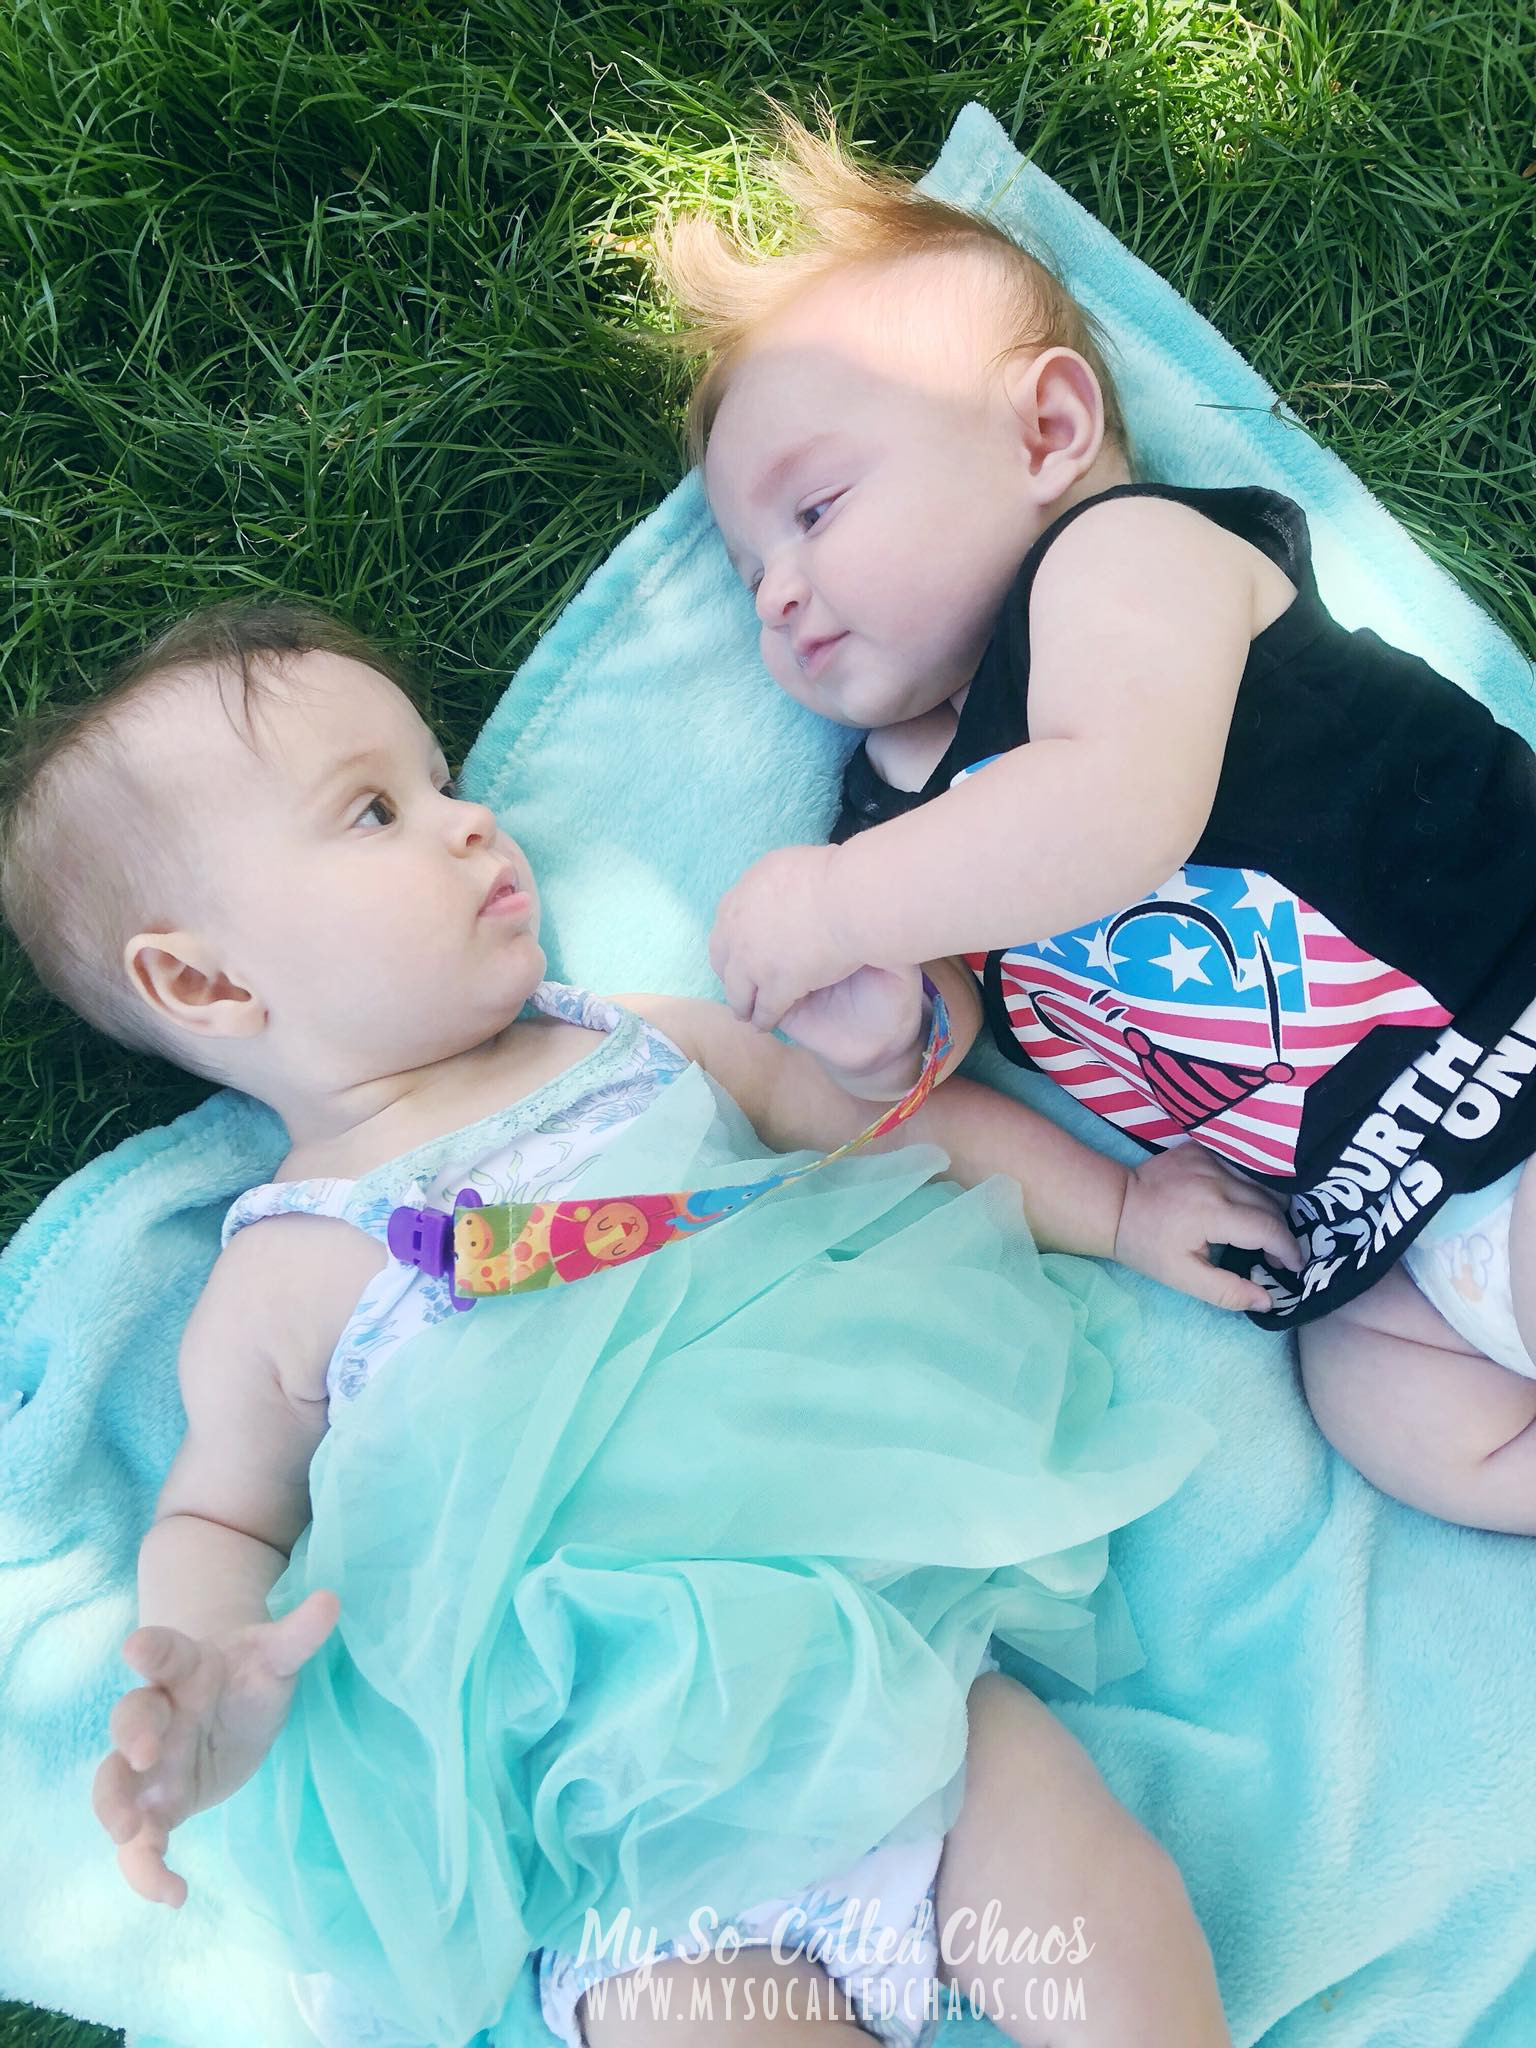 6 month old baby girl in a seafoam dress laying on a blanket next to a cute little 4 month old boy in a Darth Vader shirt and diaper.